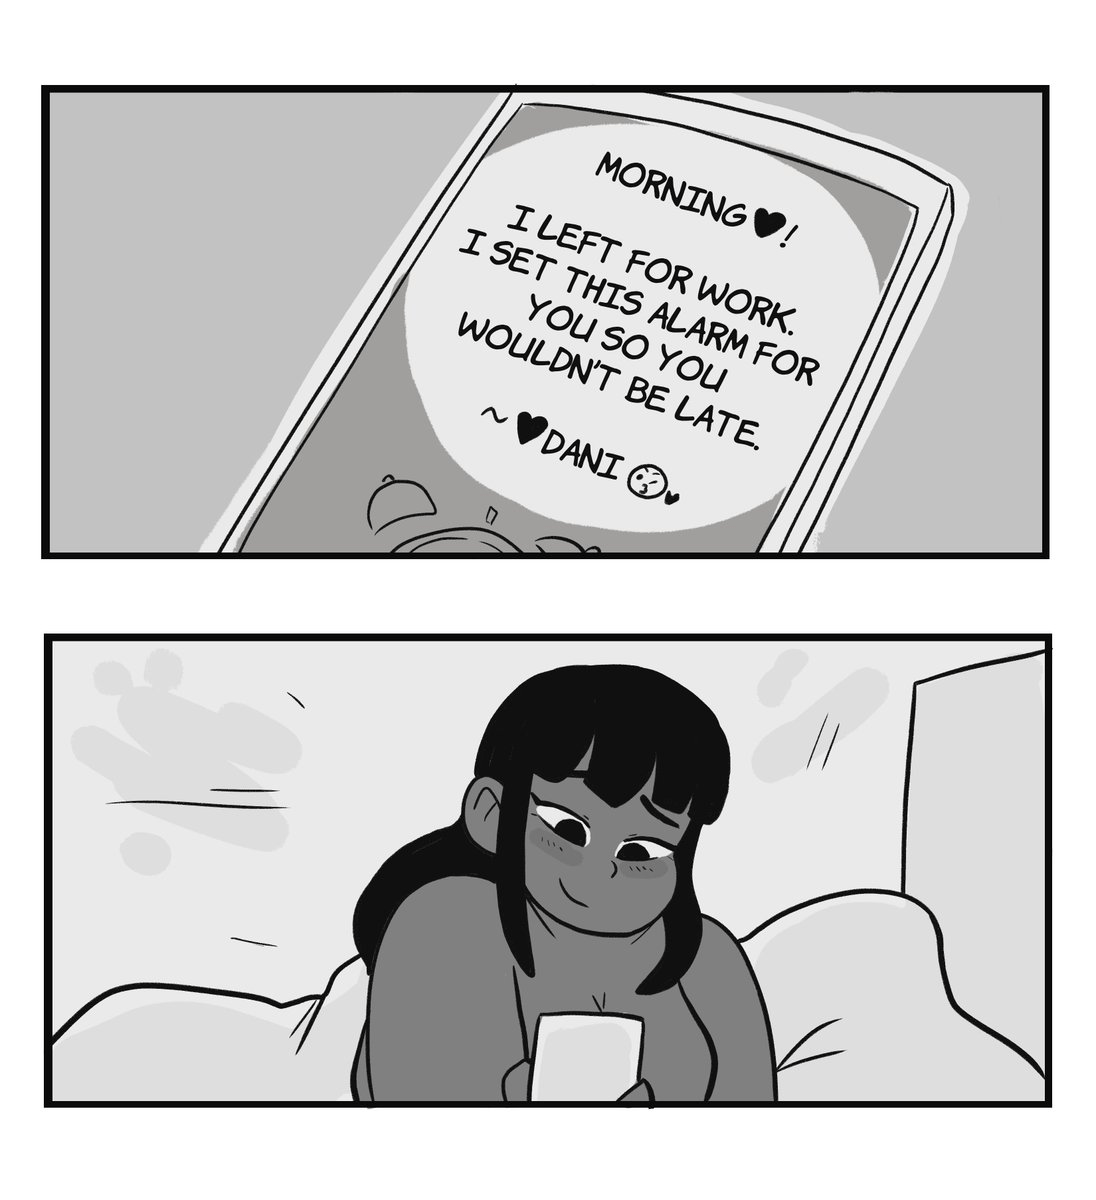 My Dragon Girlfriend #190 Dani waking up to alarm set by girlfriend and smiling at phone